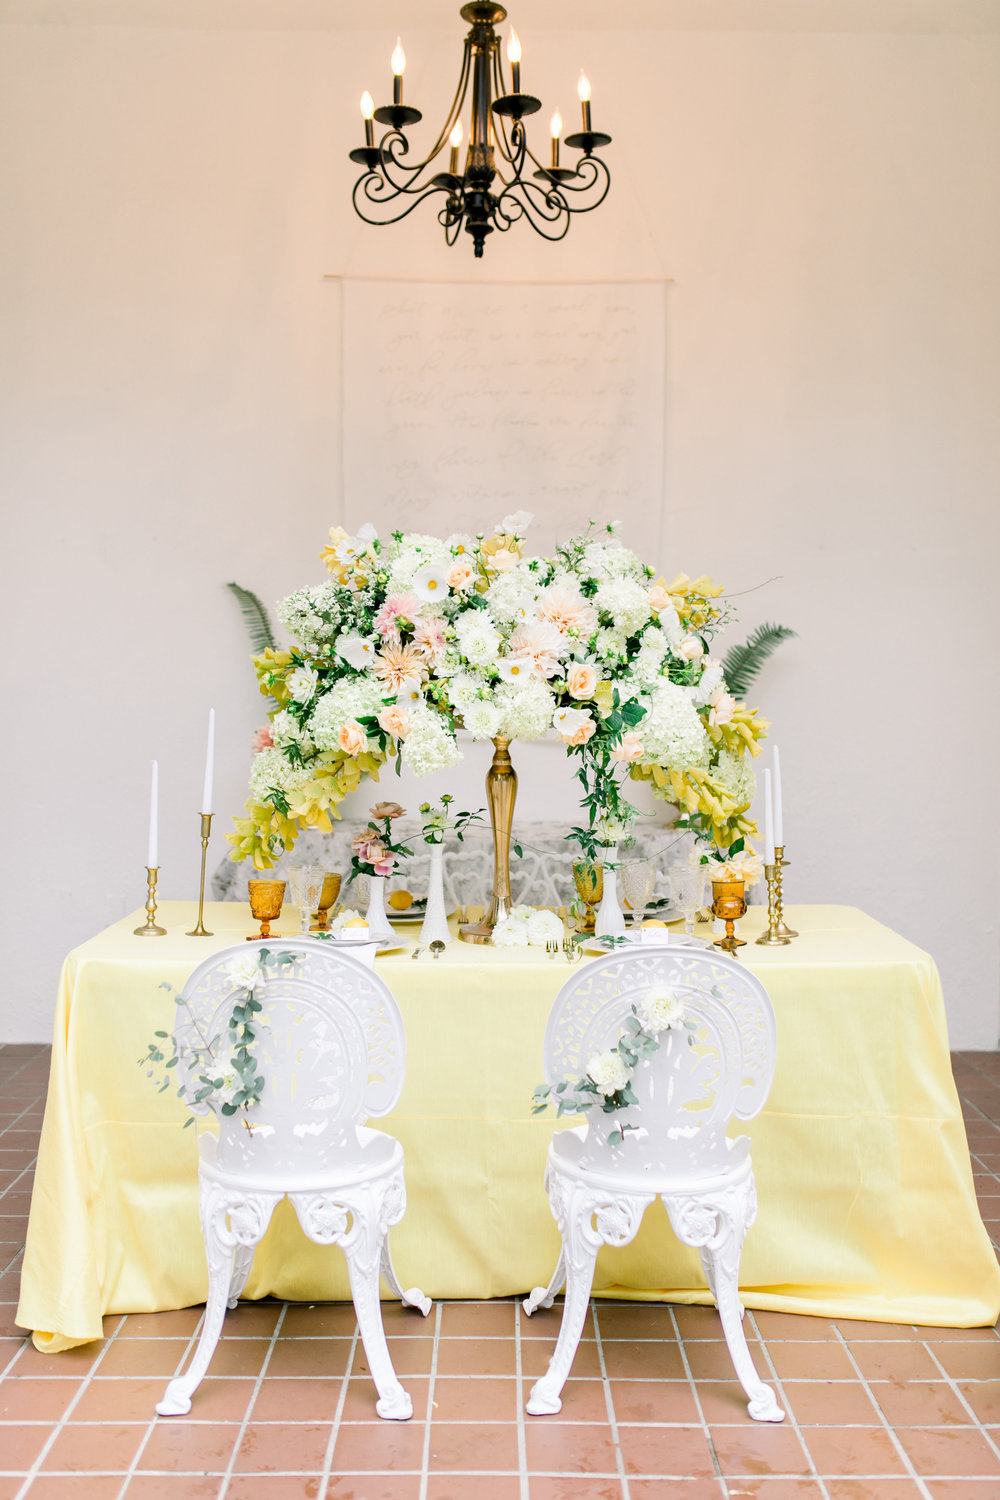 Whimsical Garden Wedding Tablescape and Calligraphy Backdrop. Photo by Kirsten Wilson Photography. Host: Styled Shoots Across America